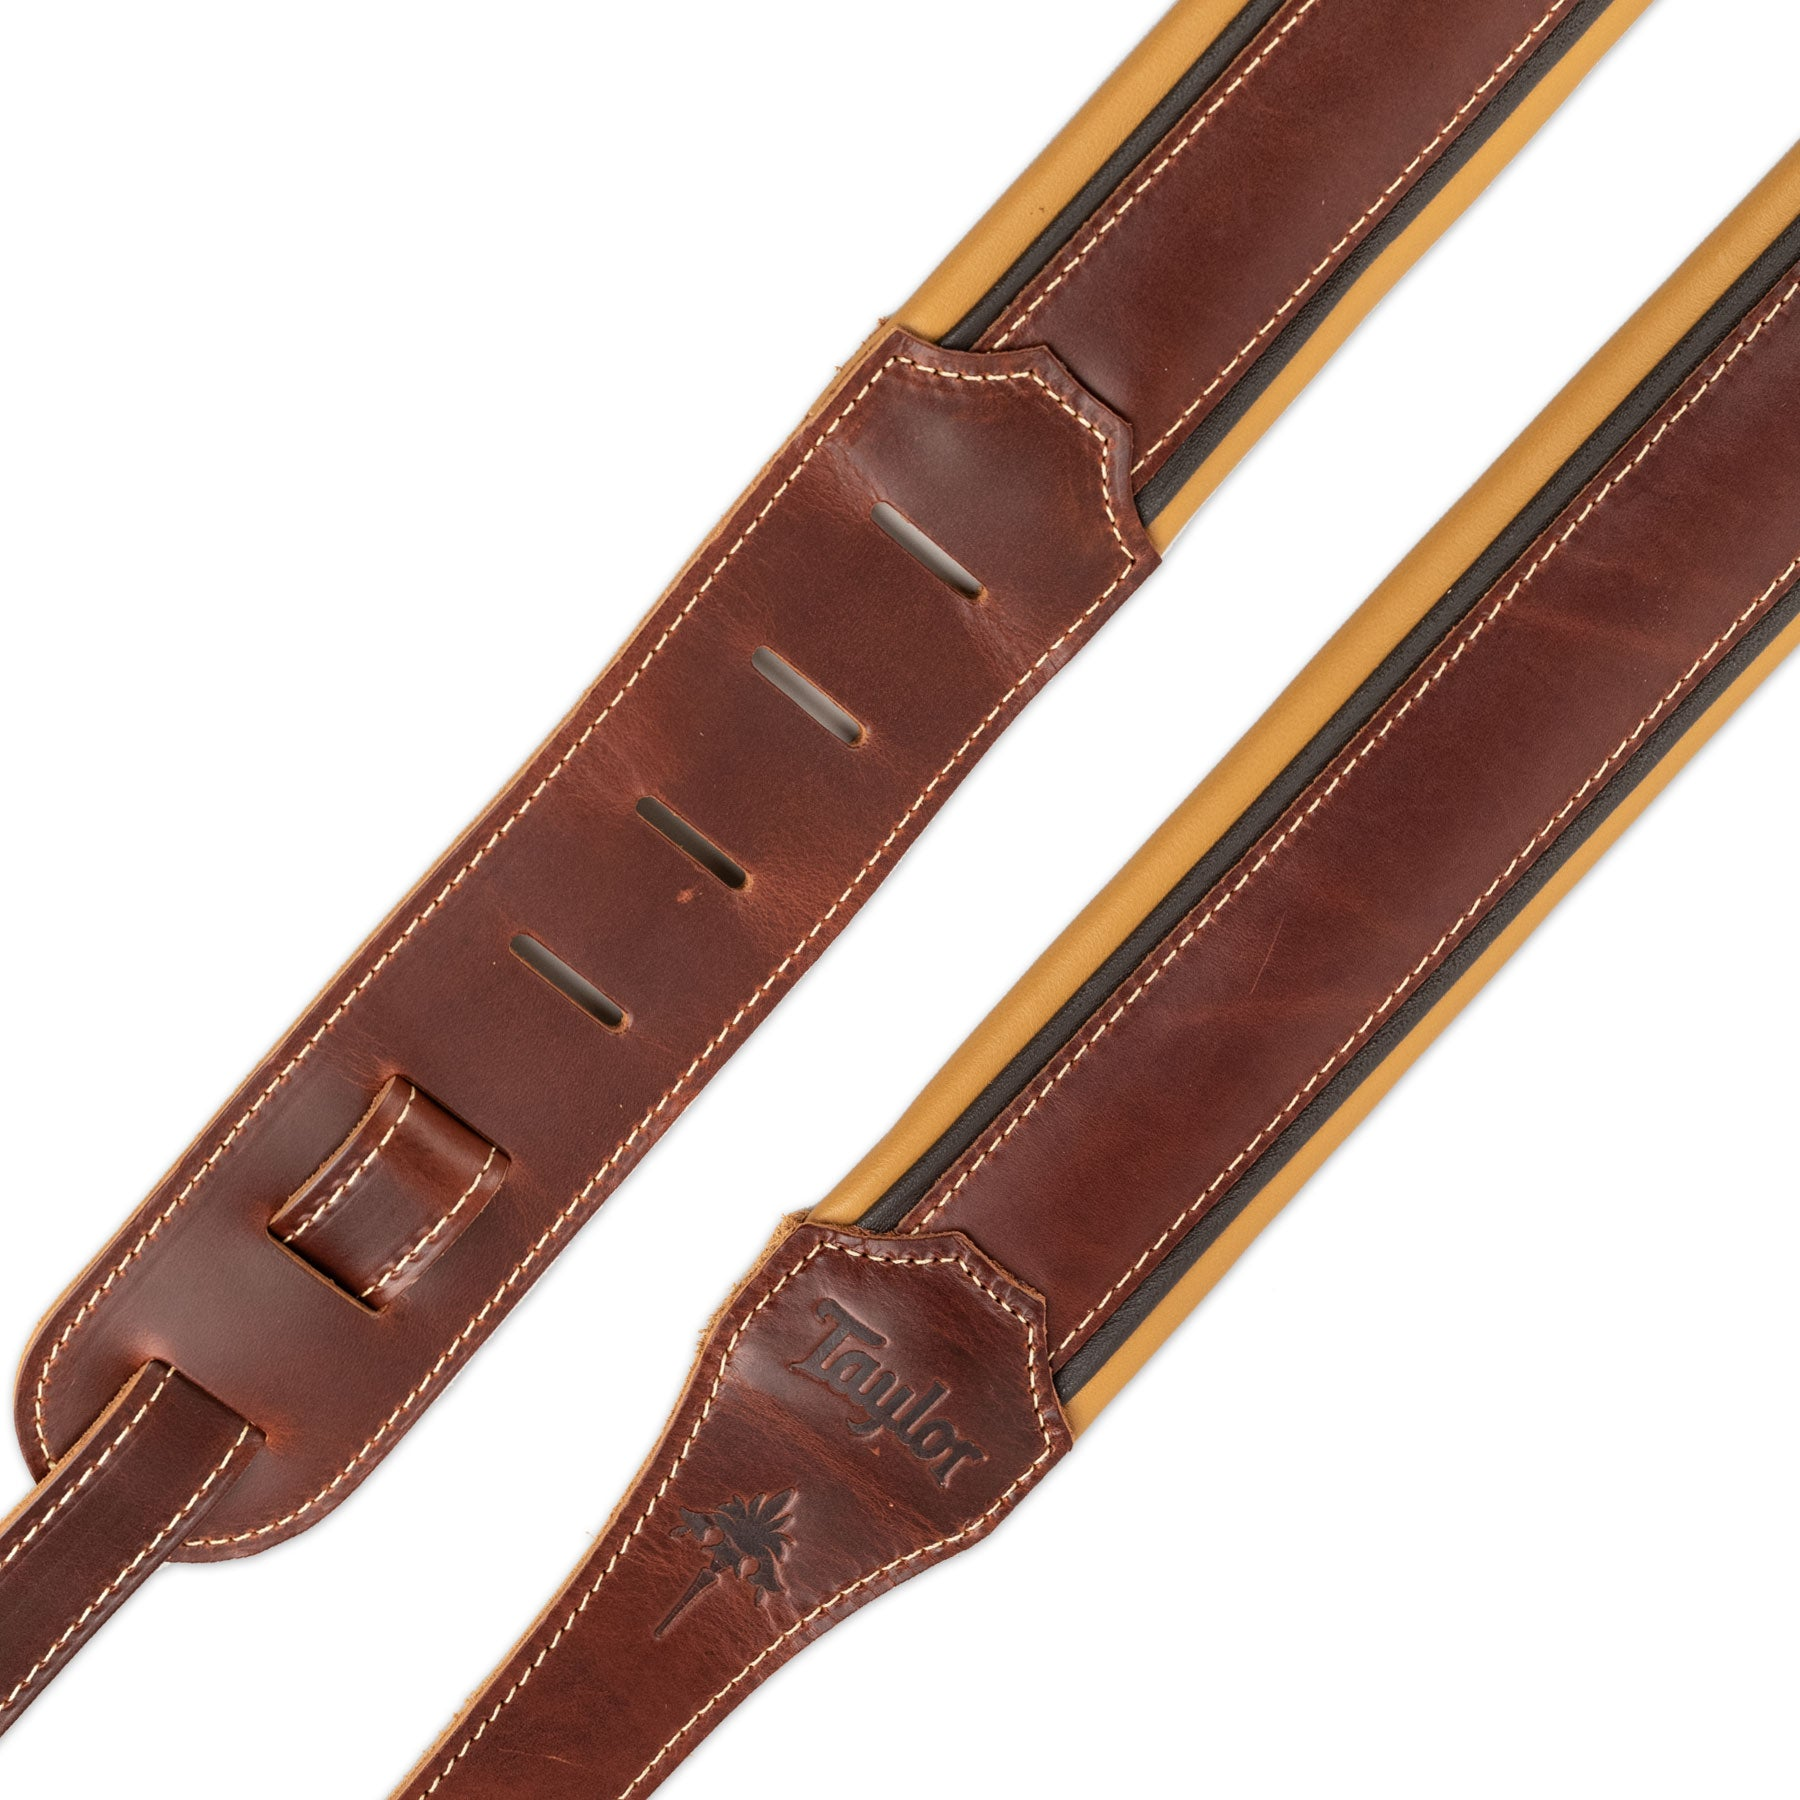 "TAYLOR 9250-04 ASCENSION 2.5"" GUITAR STRAP CORDOVAN LEATHER"